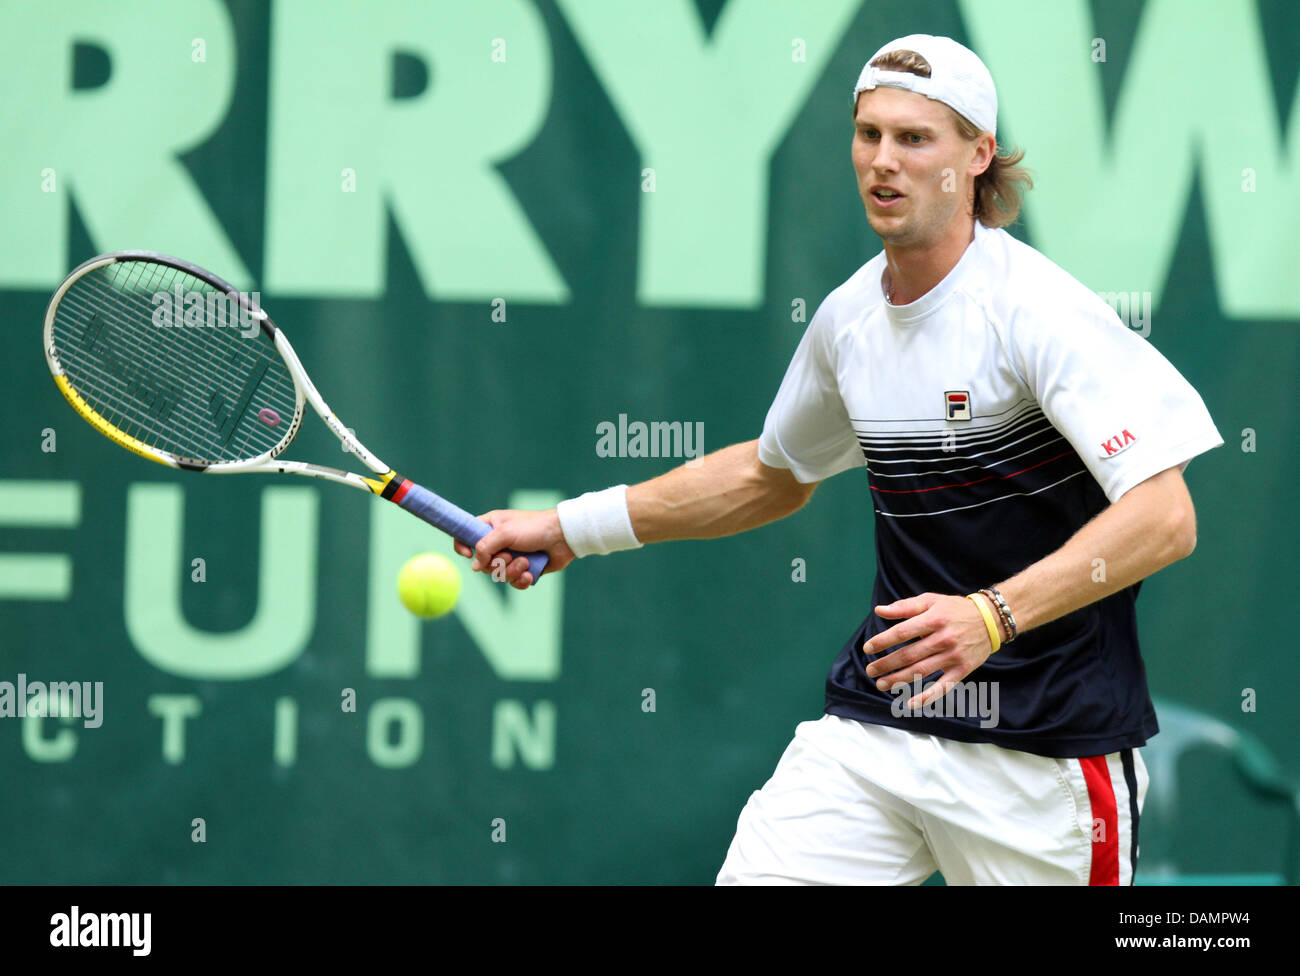 Italian player Andreas Seppi plays the ball in the ATP Tour first round match againstGermany's Tommy Haas - Stock Image